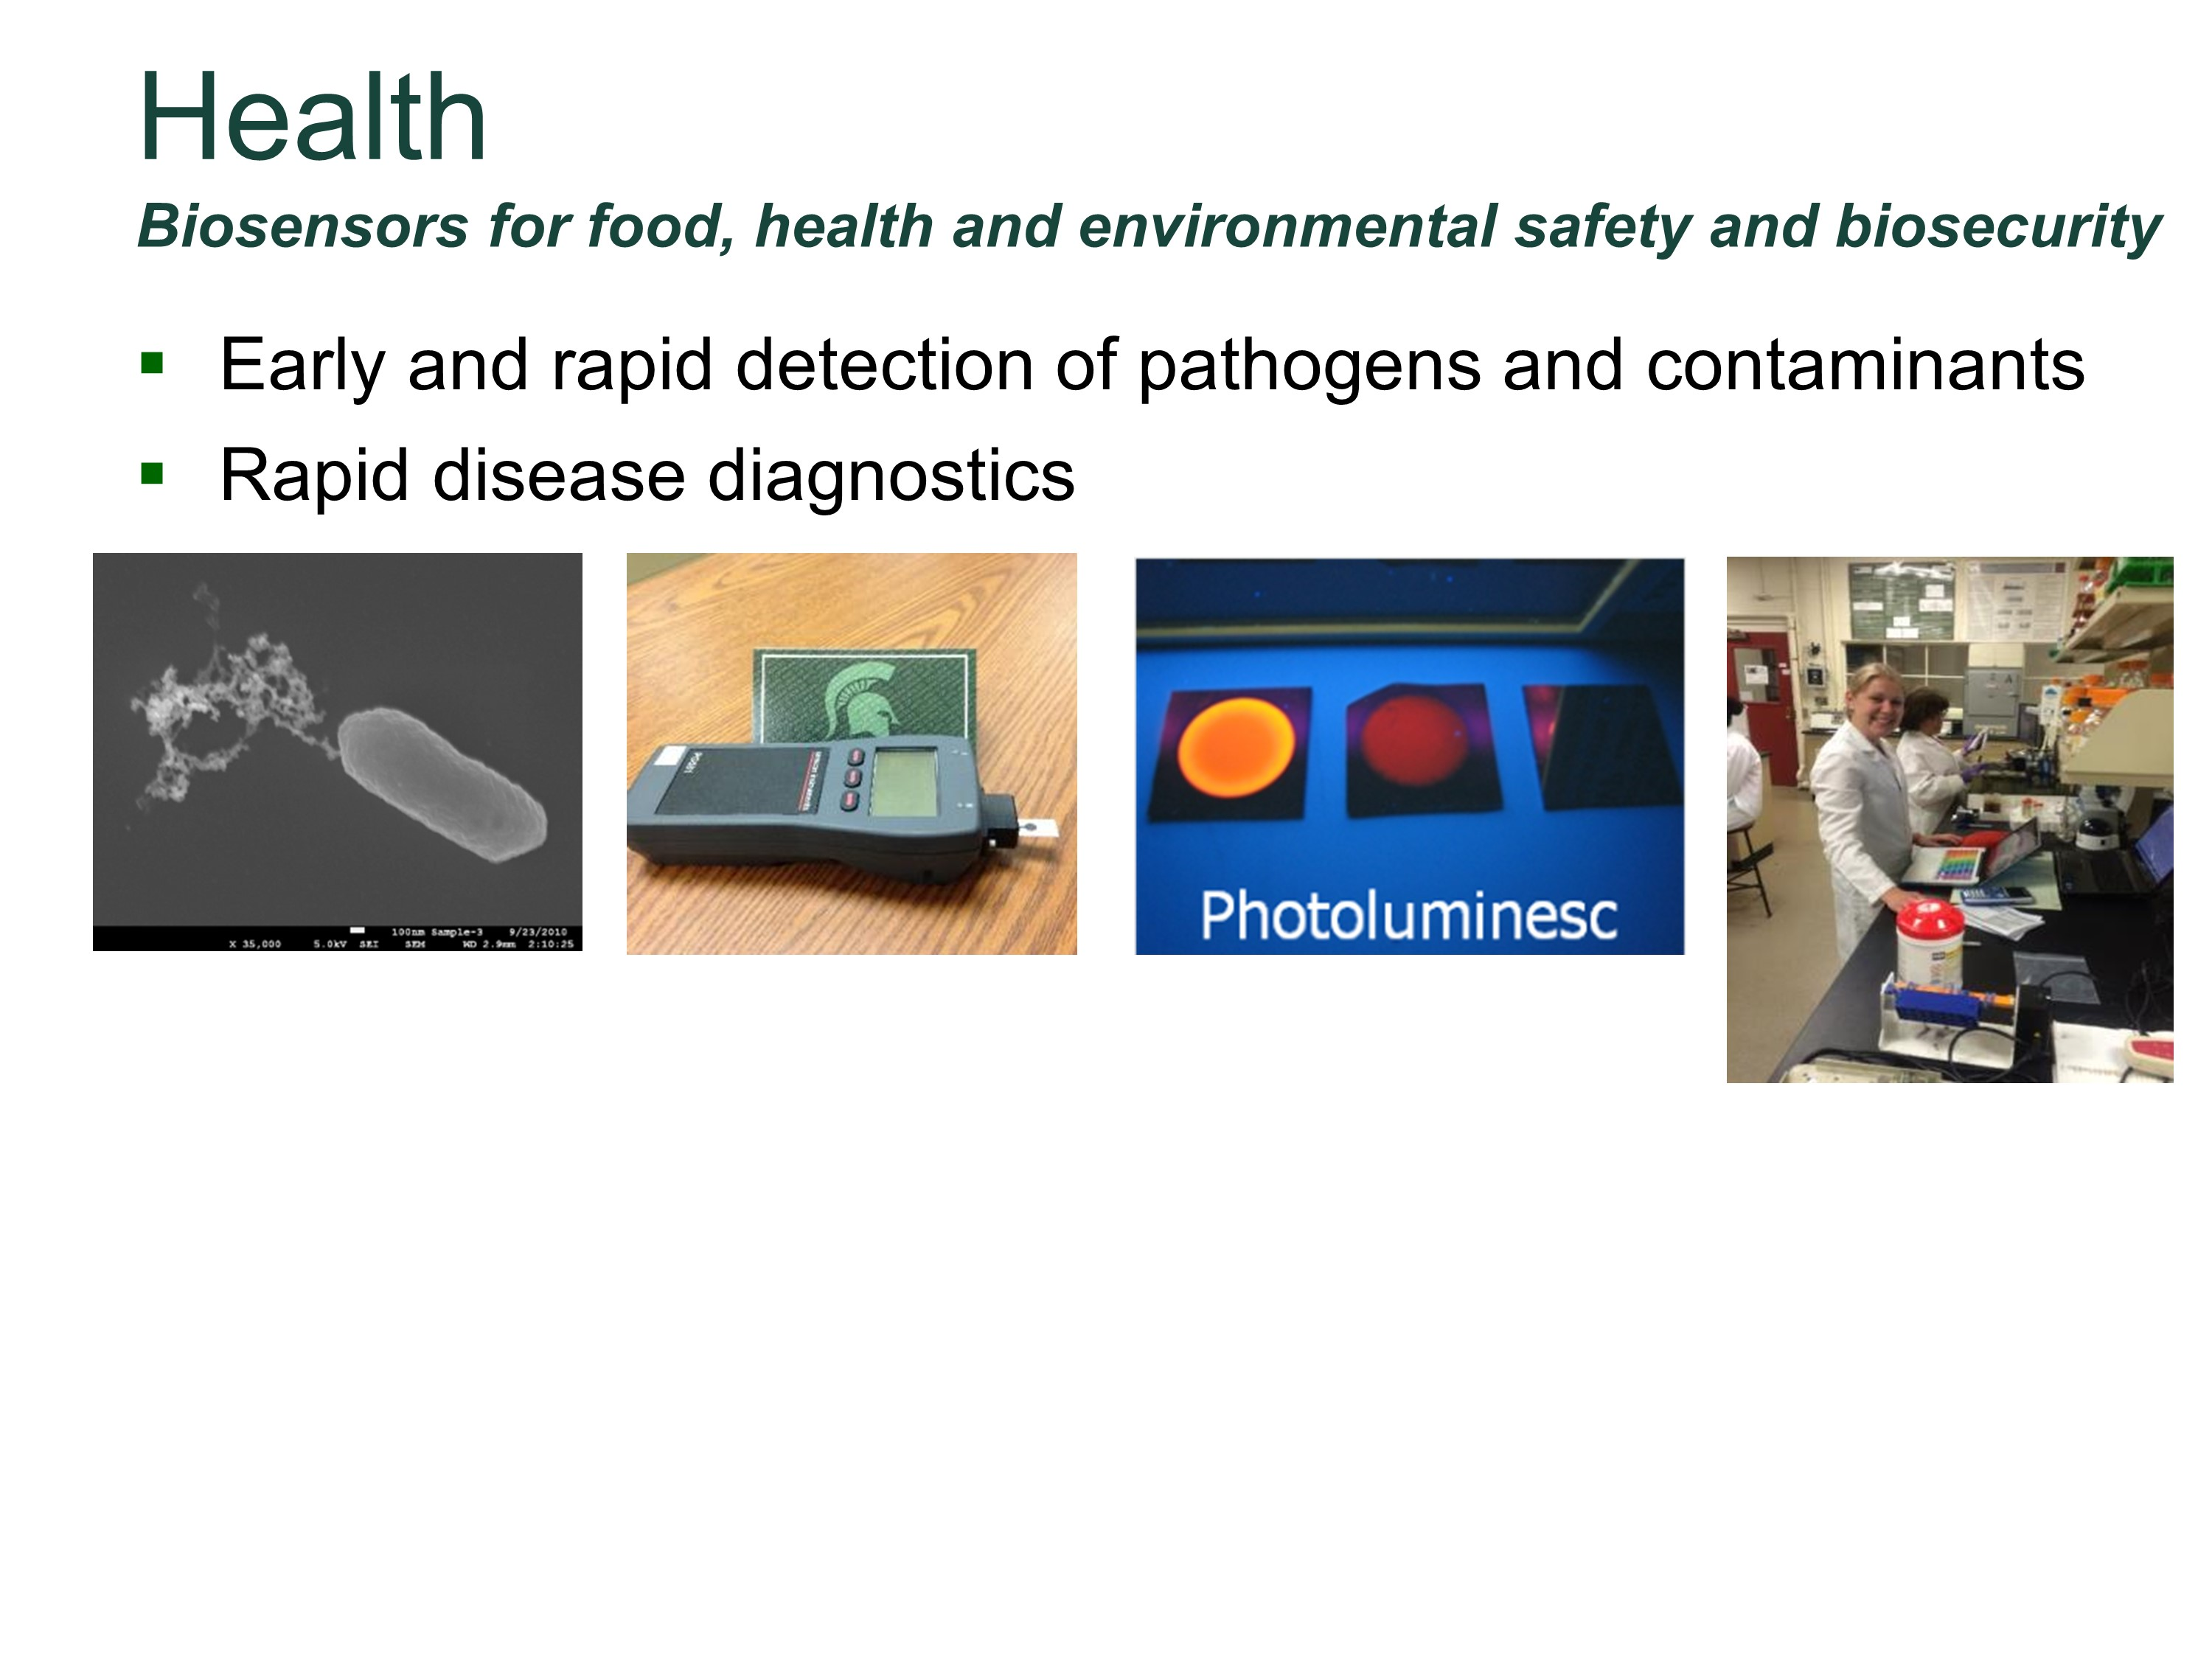 Biosensors for food, health and environmental safety and biosecurity